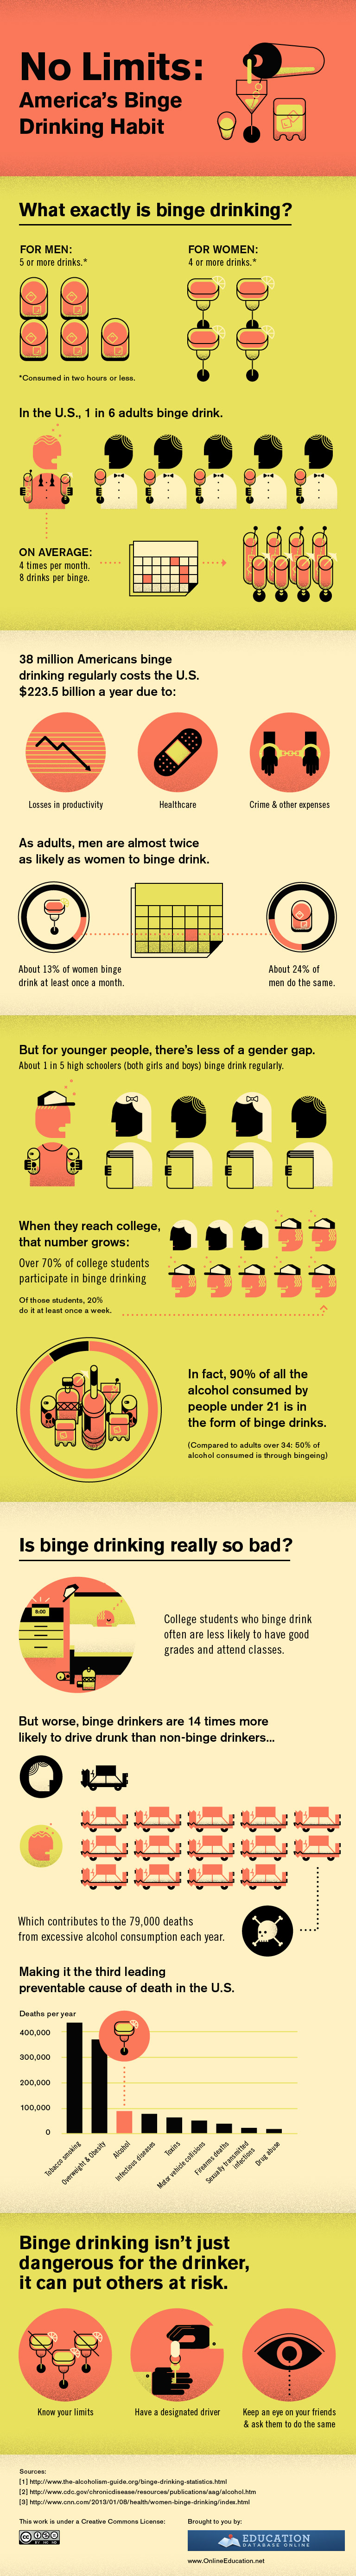 Binge Drinking In The US